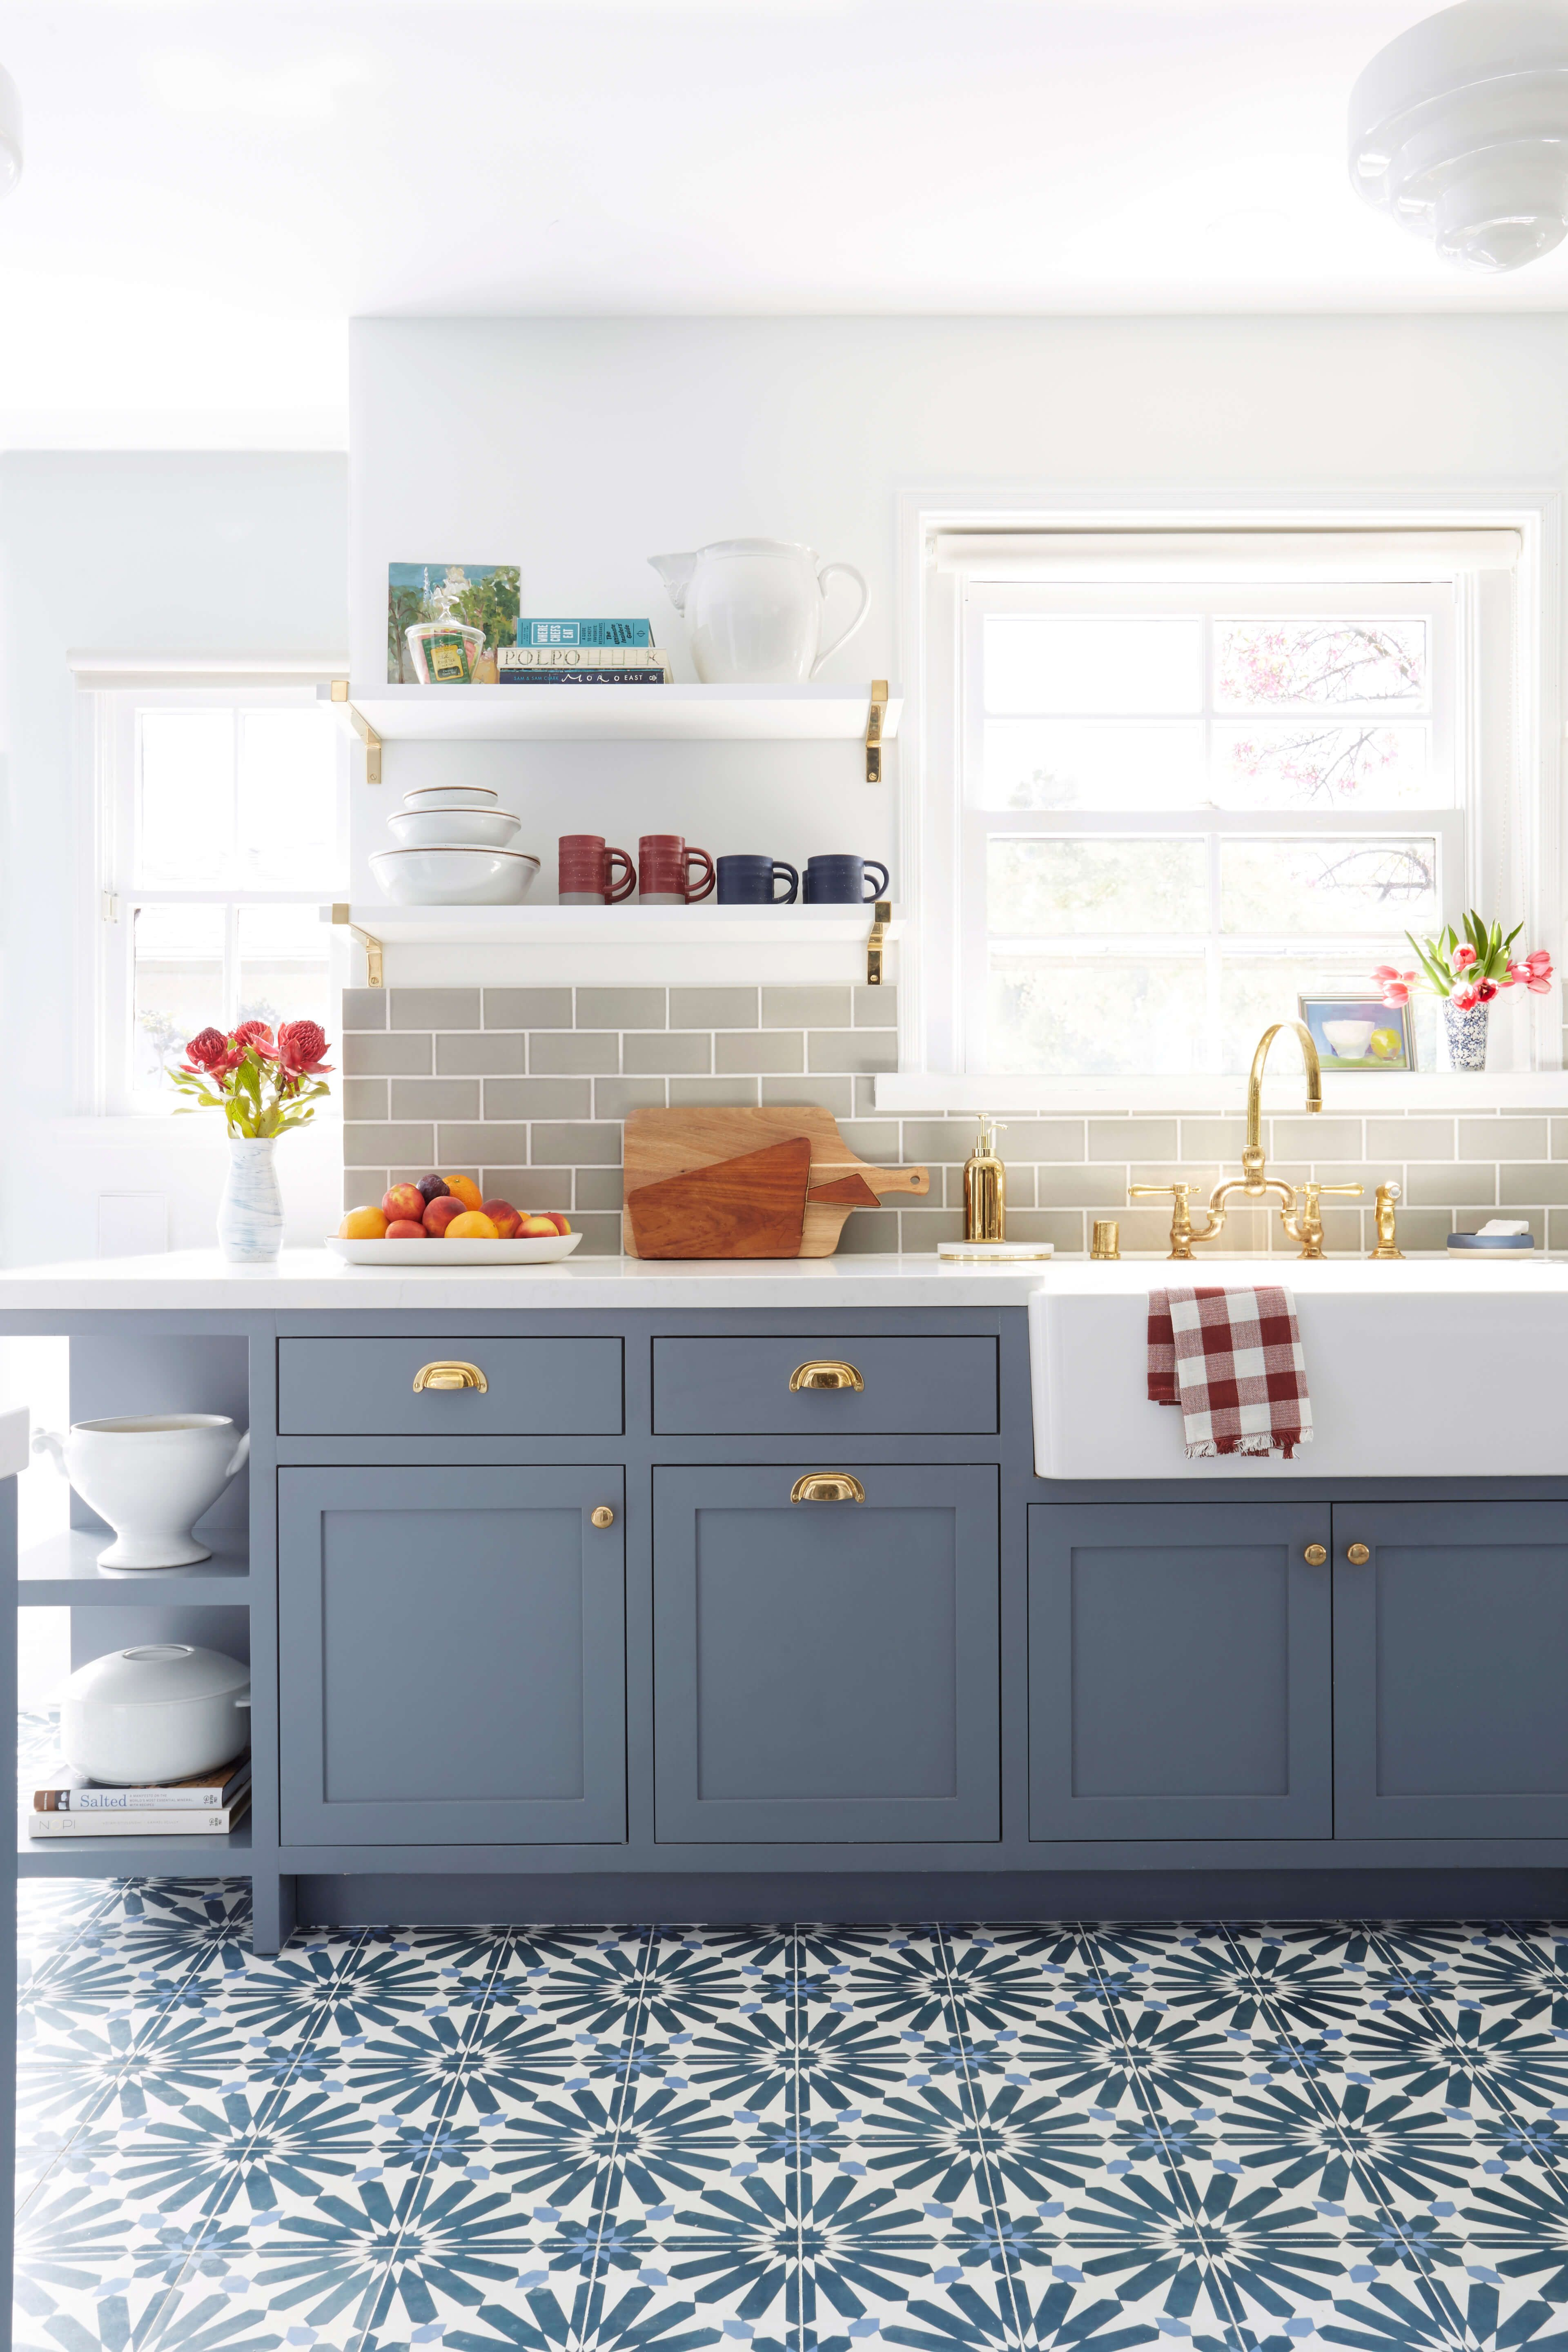 50 Best Small Kitchen Design Ideas - Decor Solutions for ... on Best Small Kitchens  id=52317